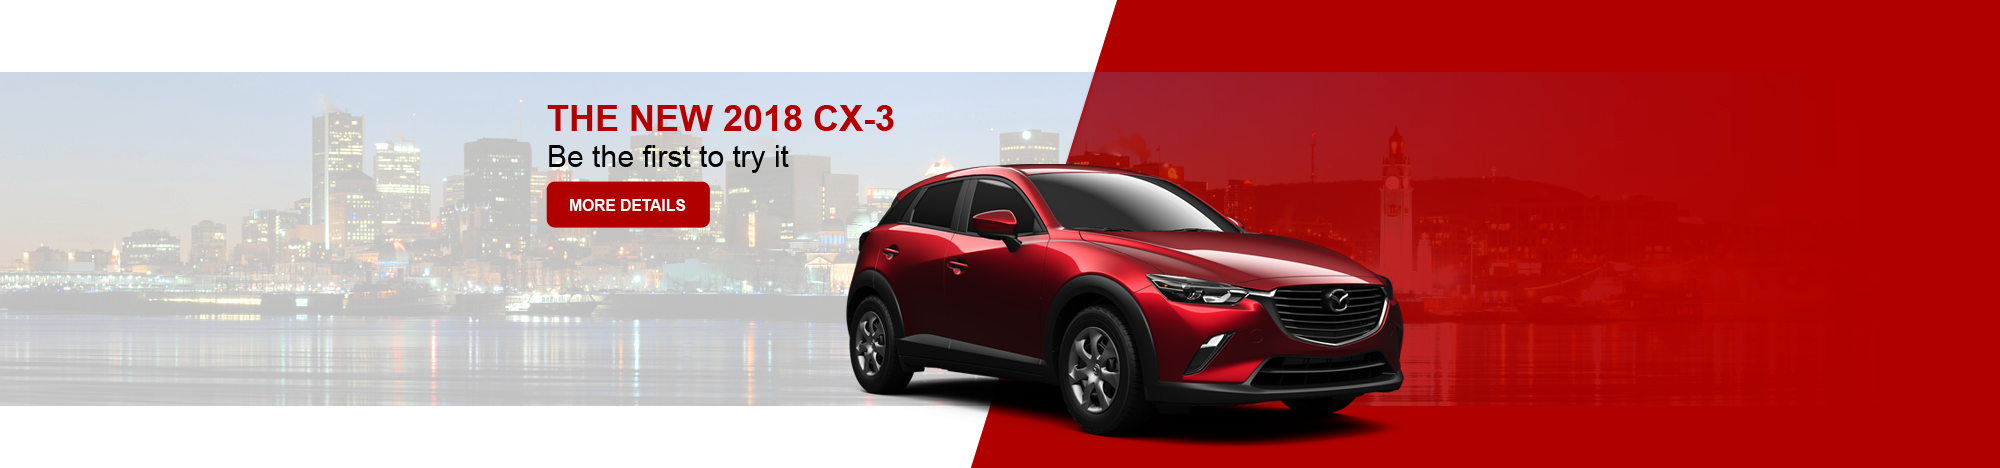 The new 2018 CX-3